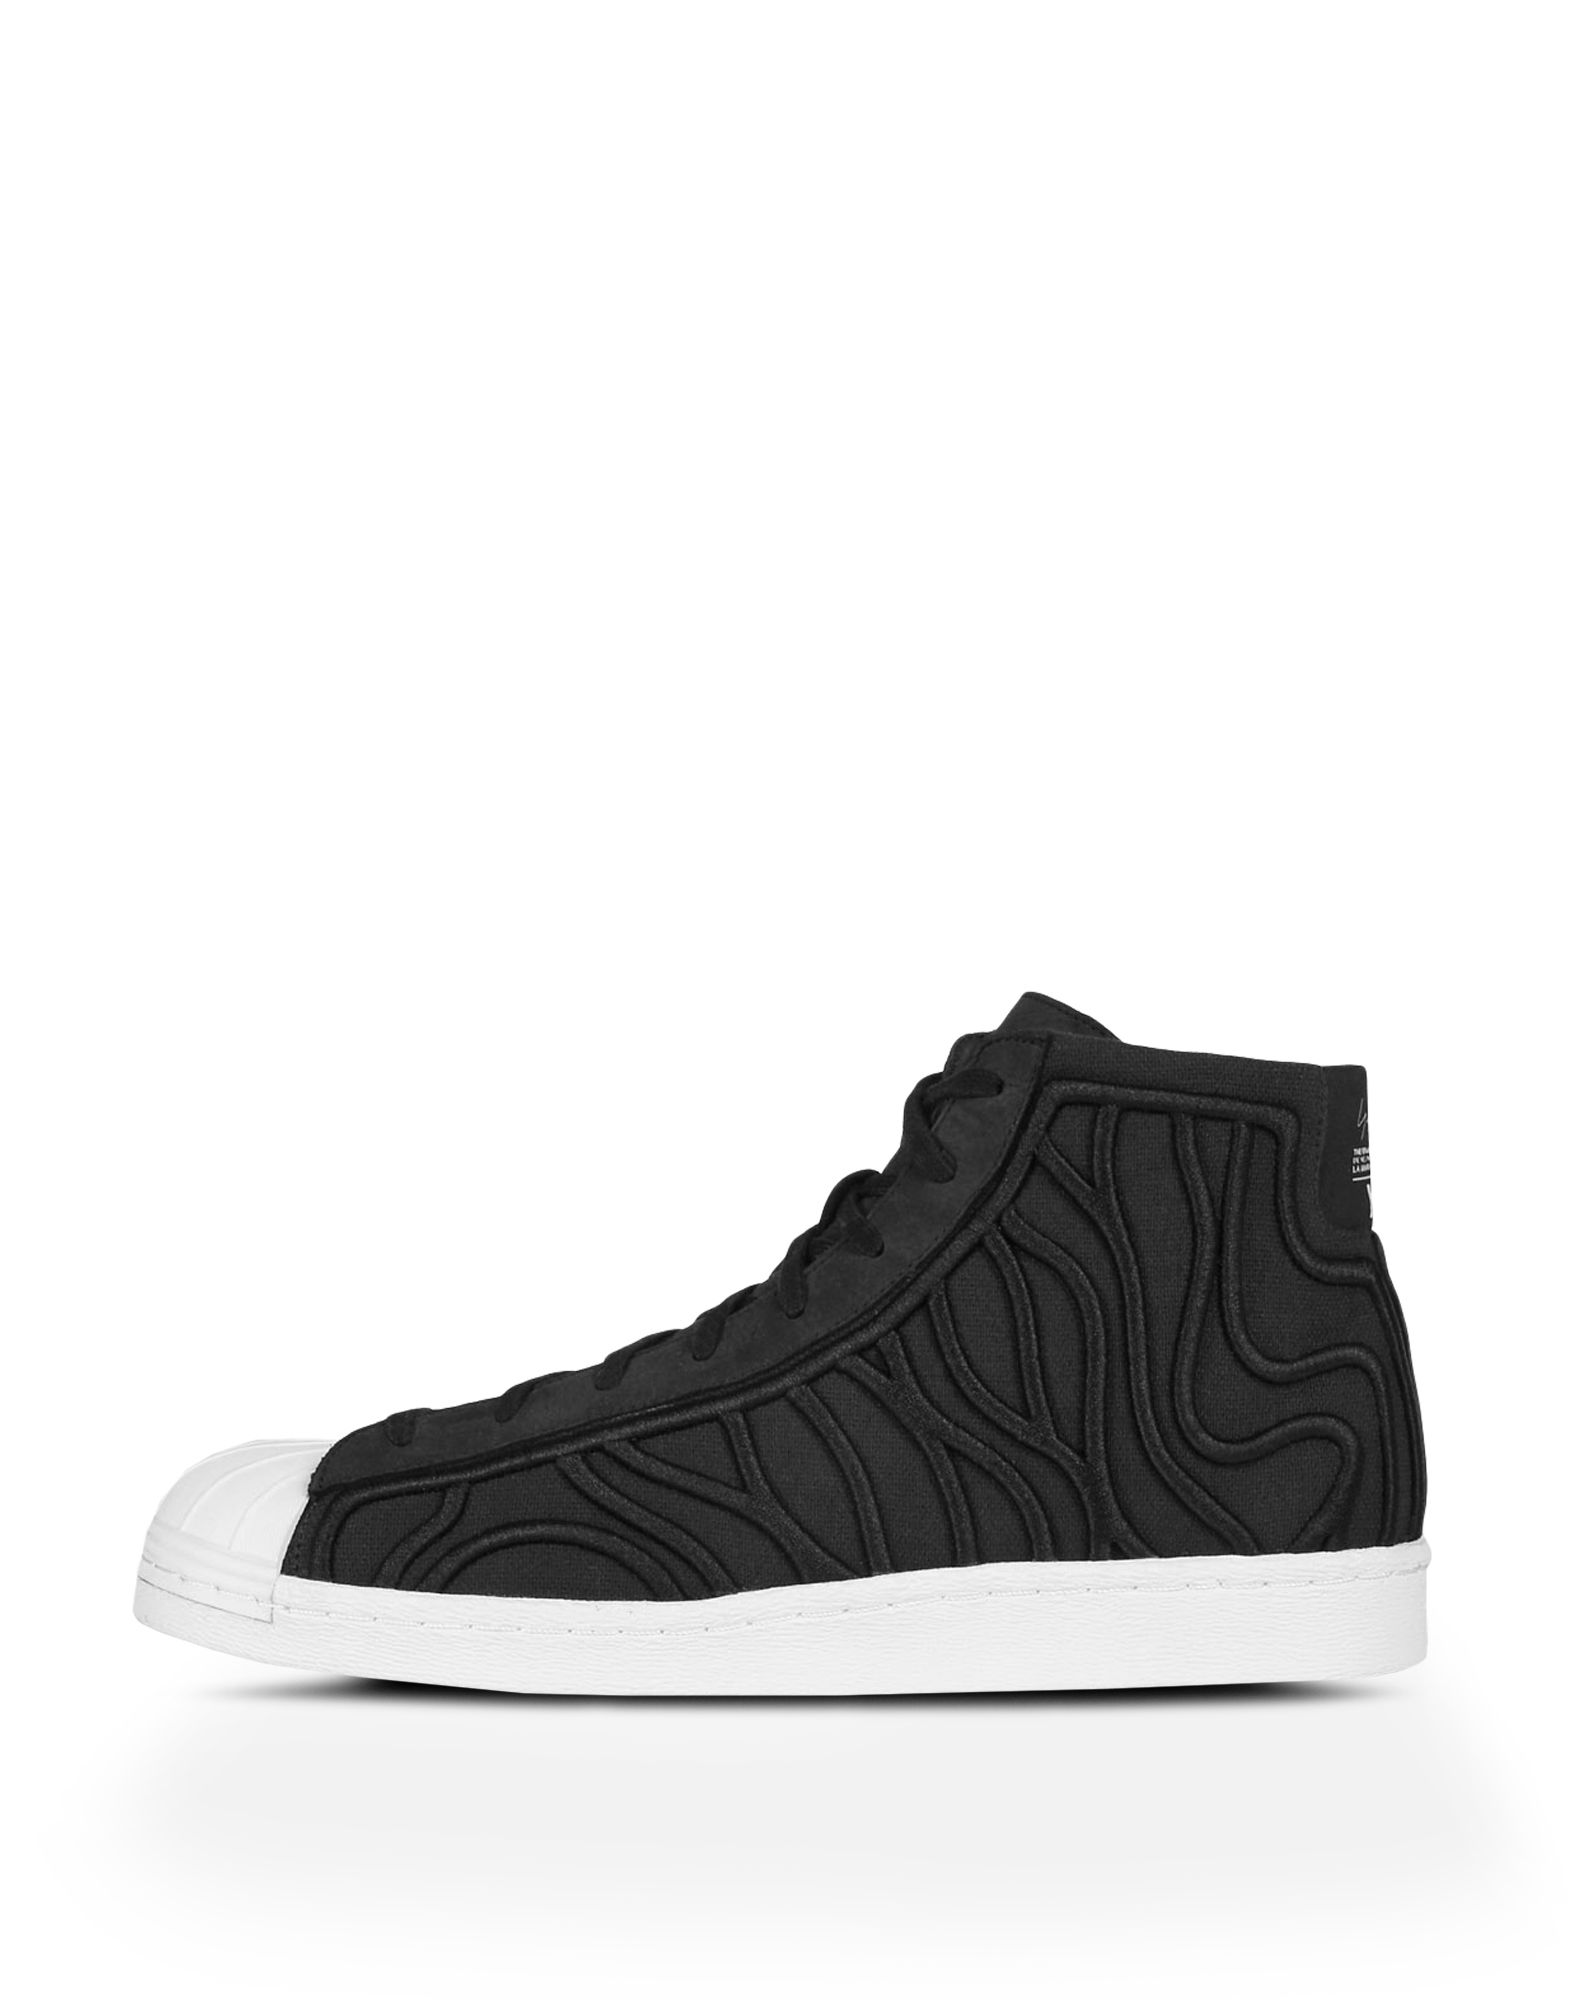 Y-3 SHISHU SUPER SHOES unisex Y-3 adidas